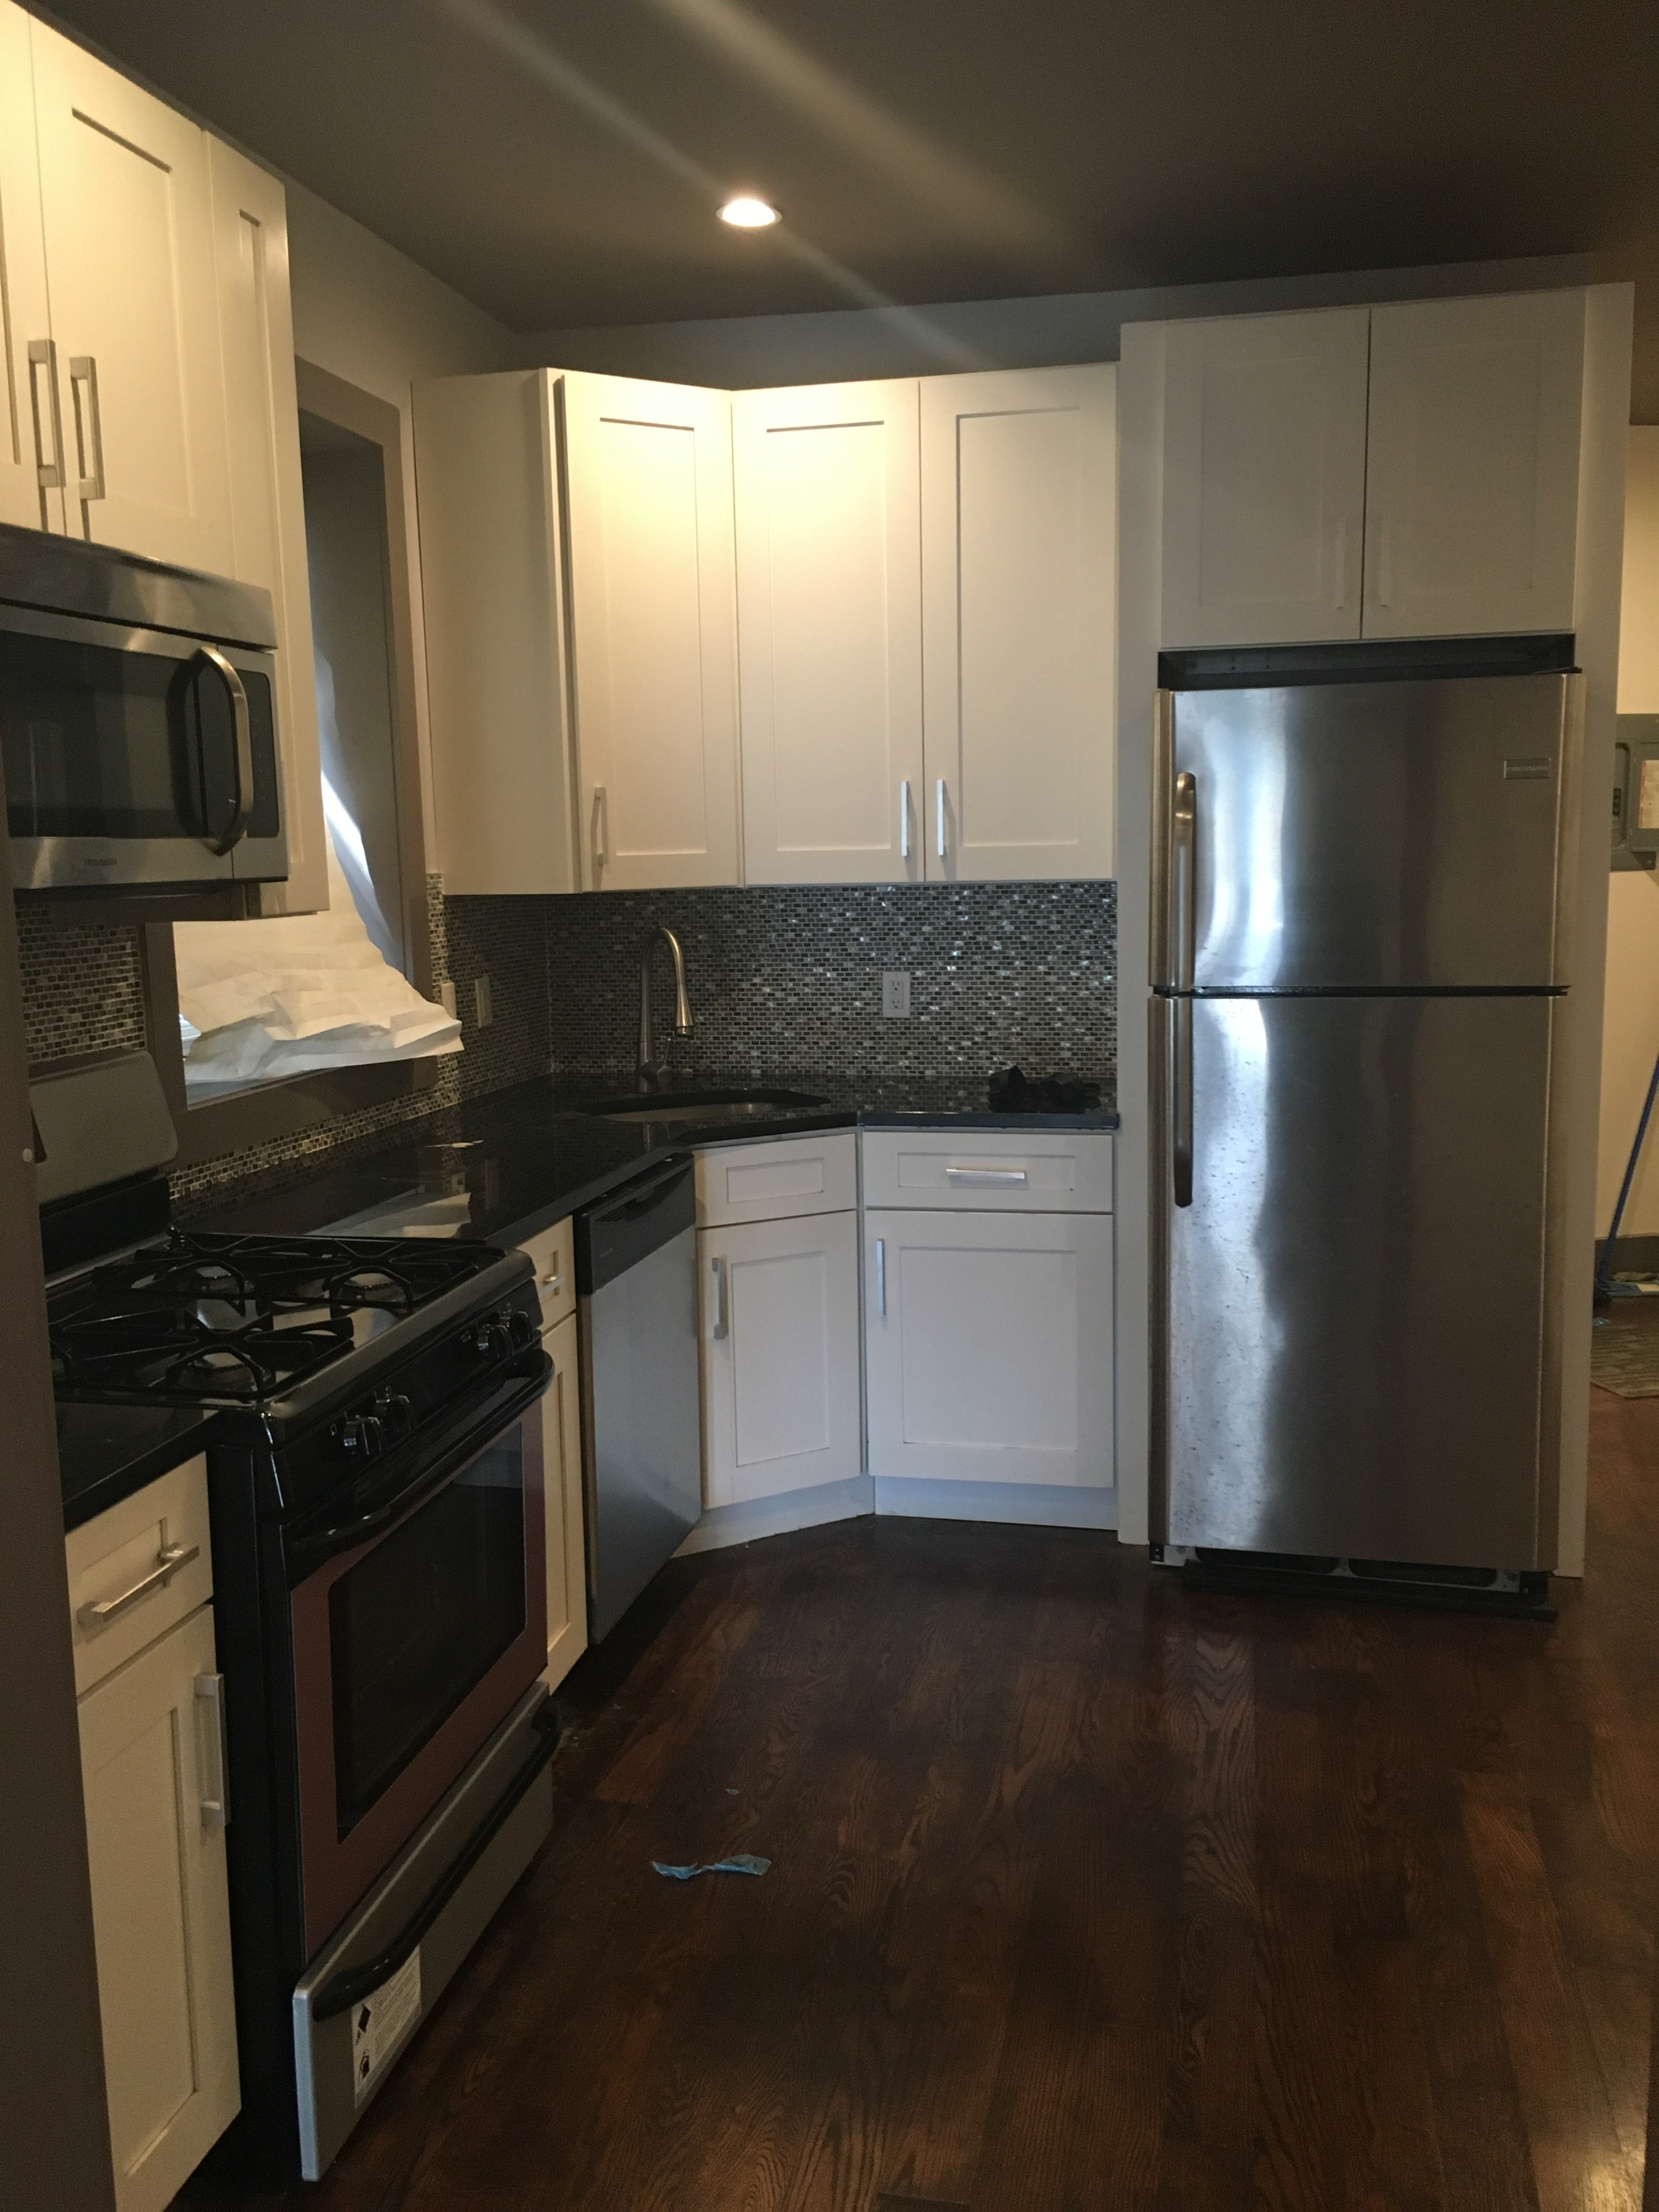 64 sip ave jersey city nj 07306 1 bedroom apartment for 1 bedroom apartments in jersey city